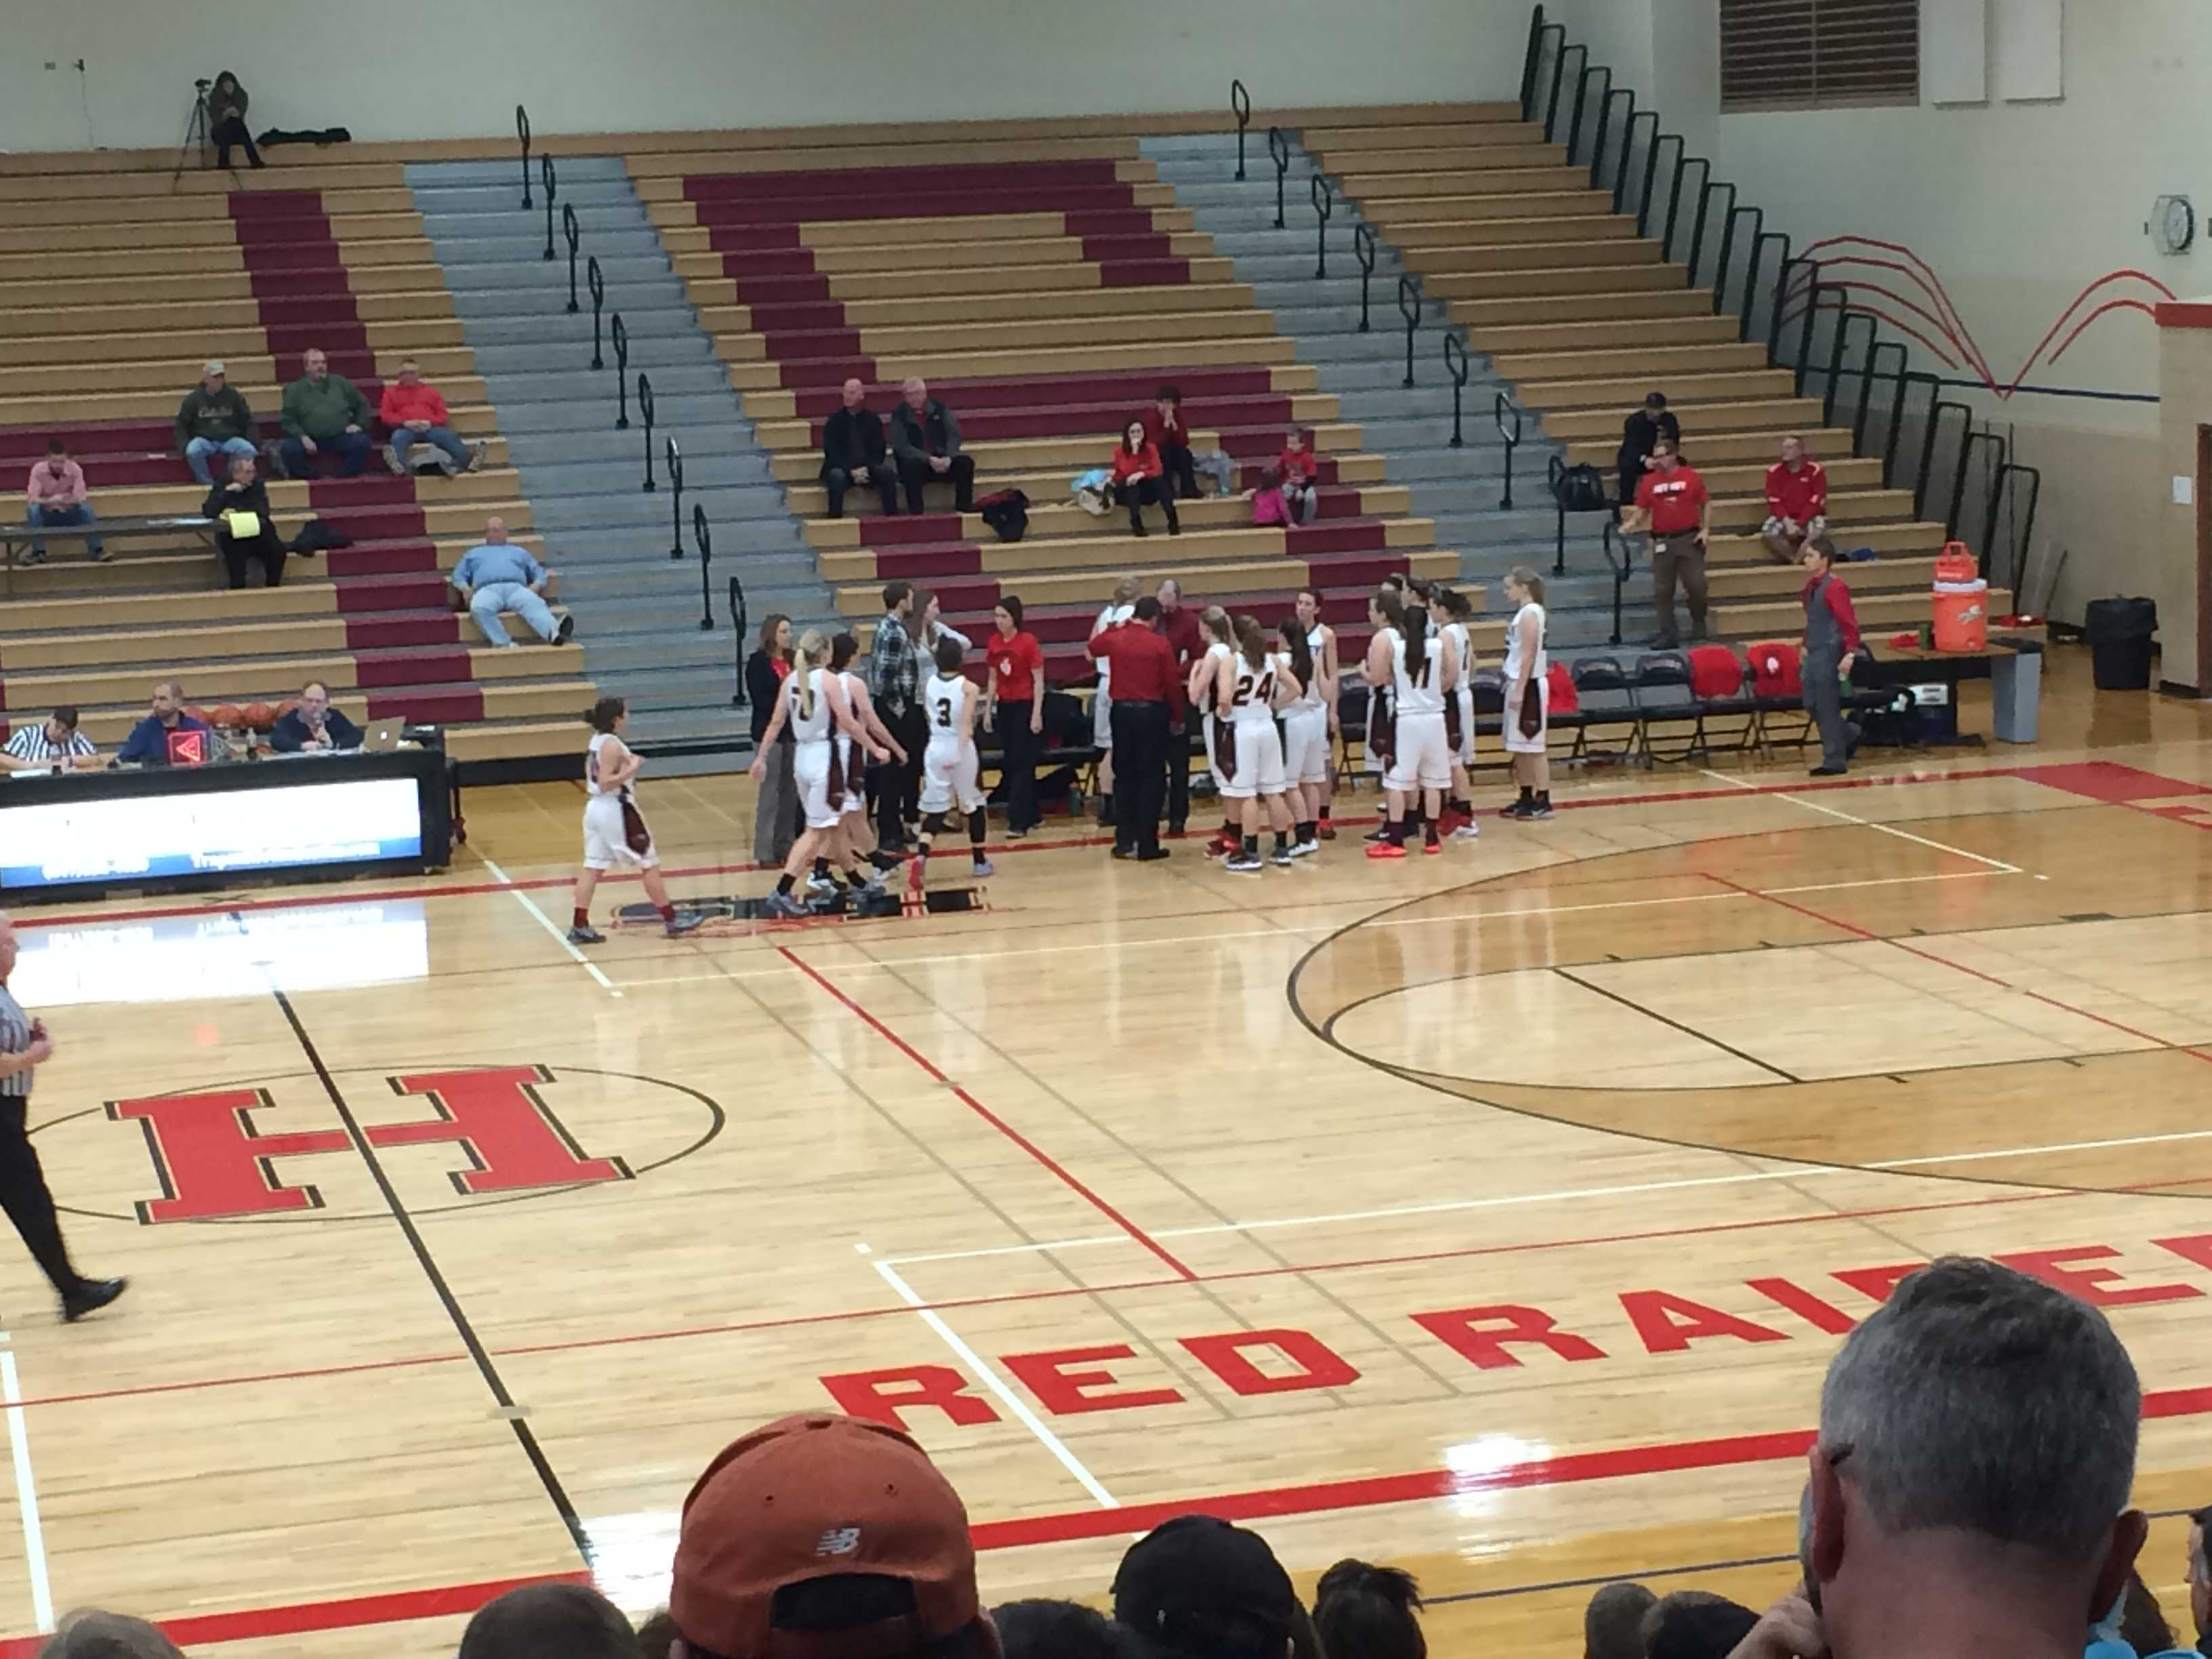 The Red Raiders huddle during their game against CLS.